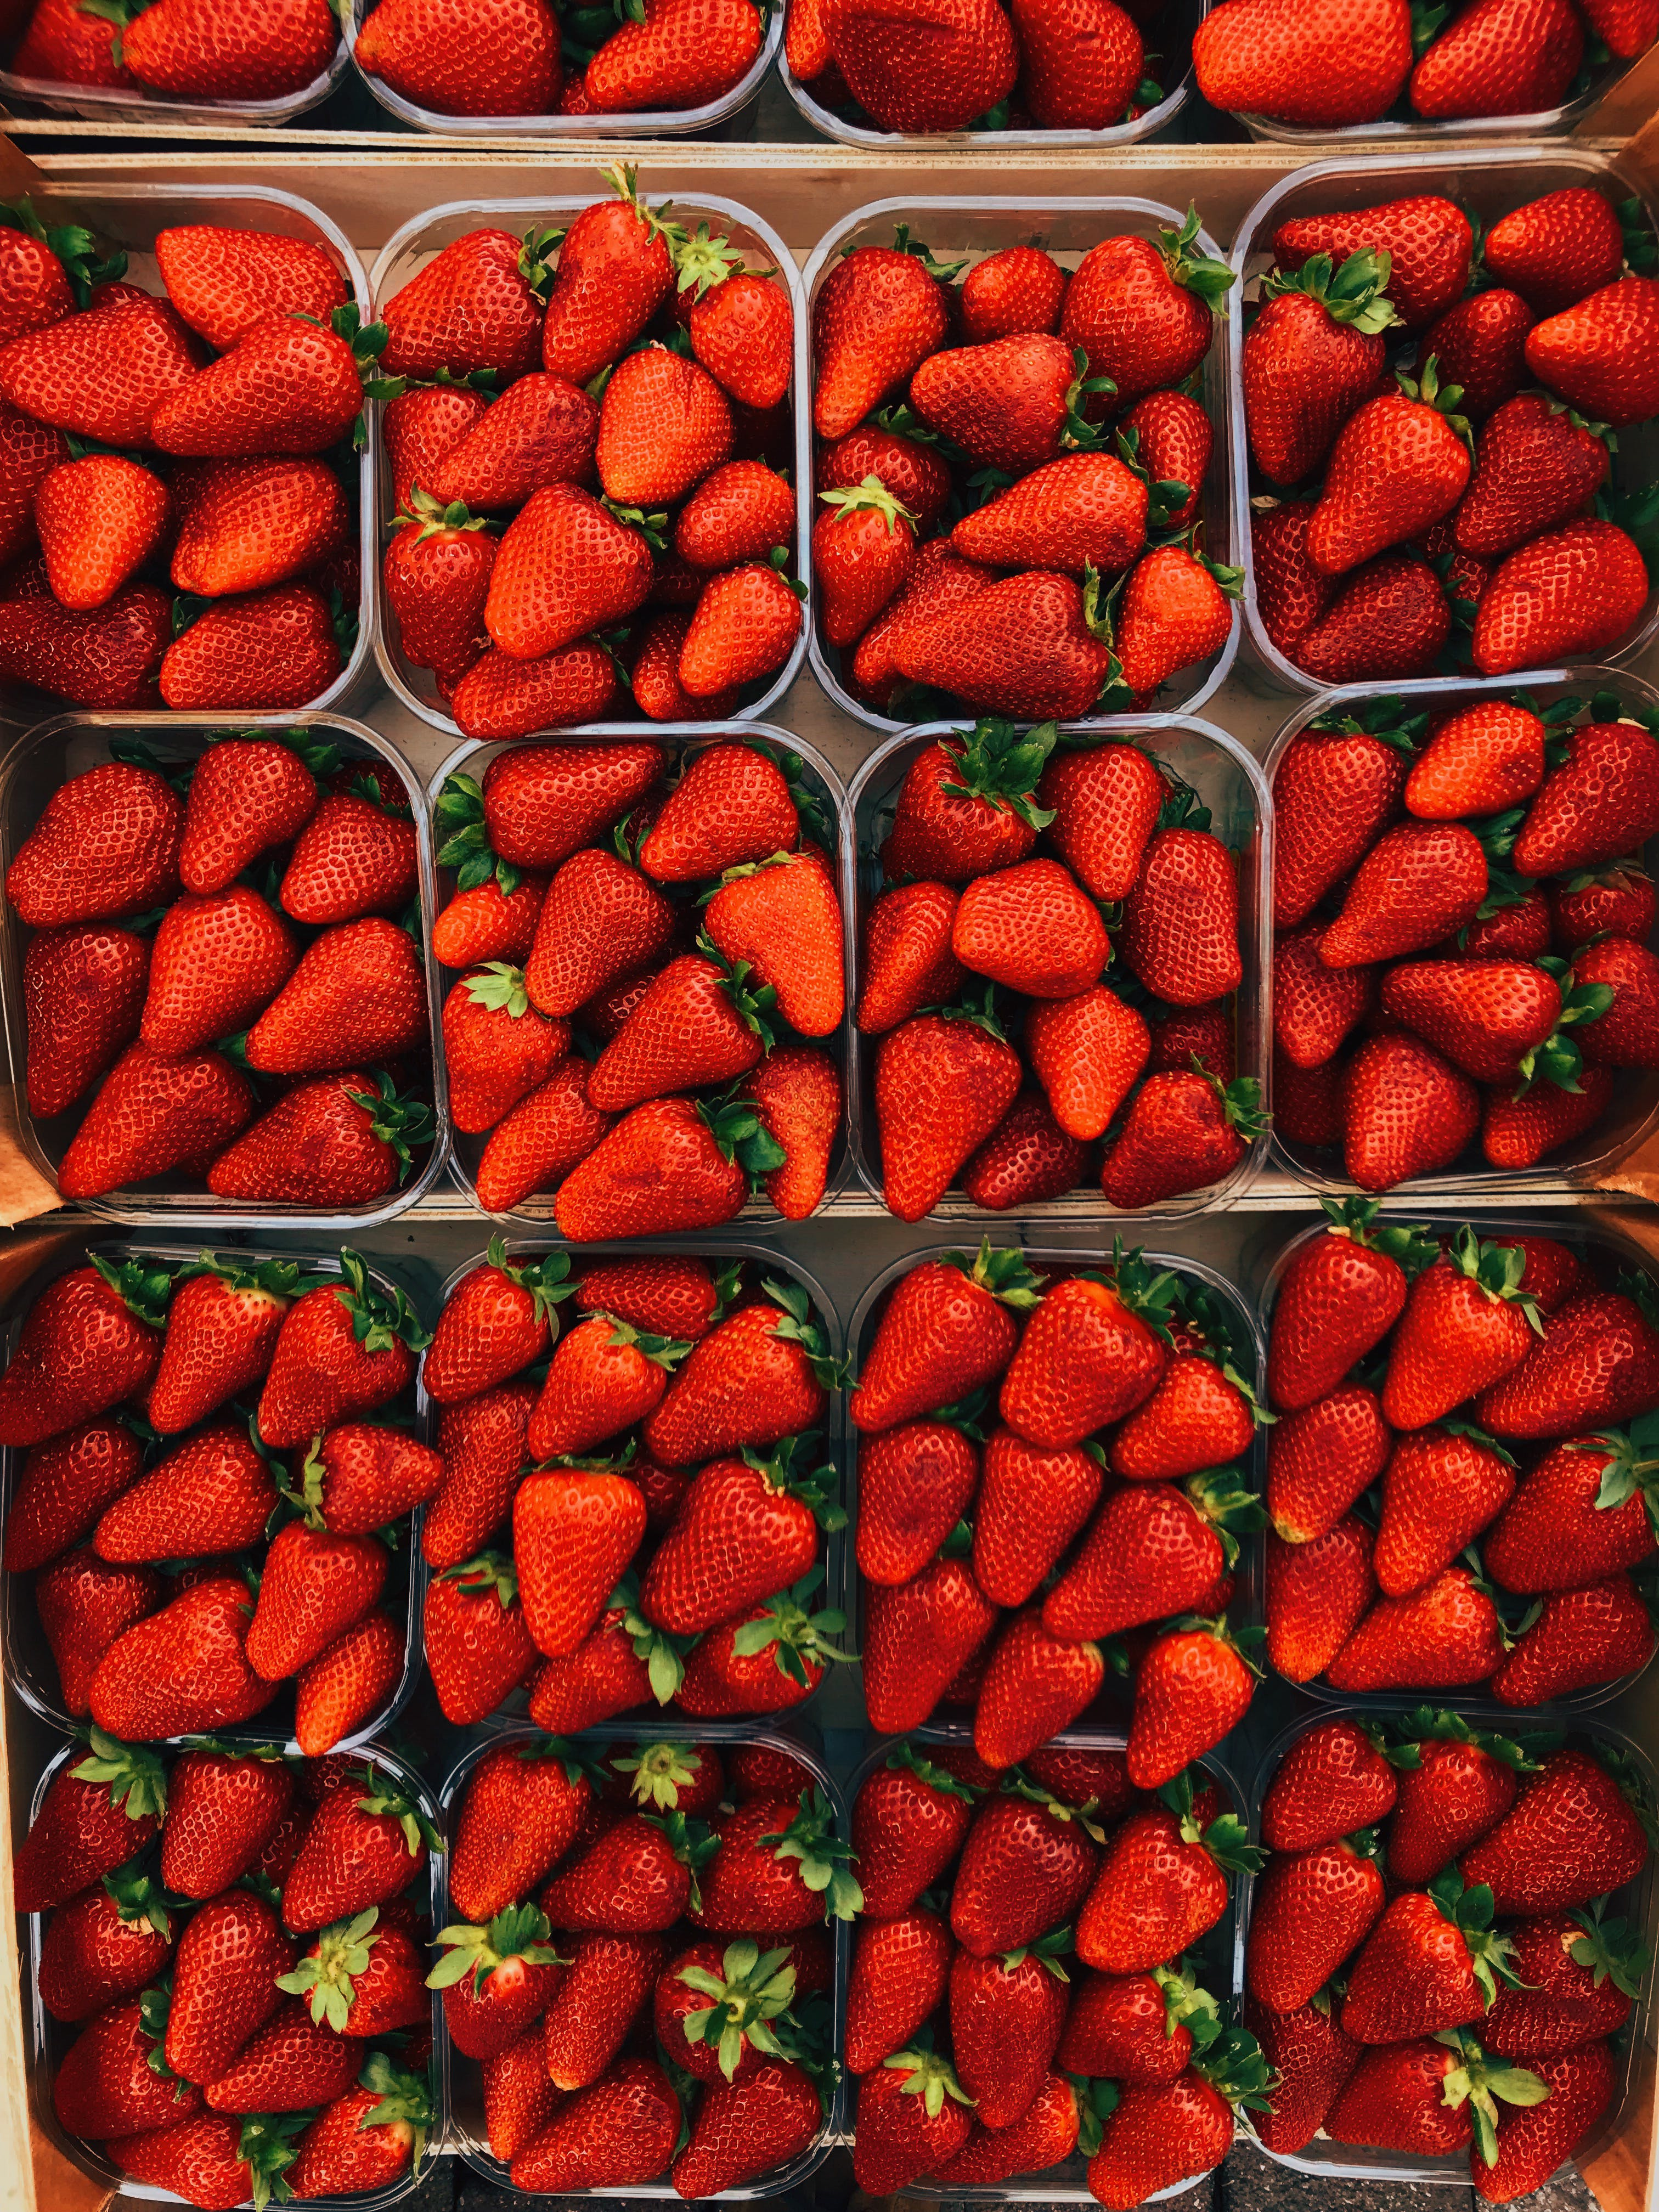 Top View Photography of Strawberries on Containers